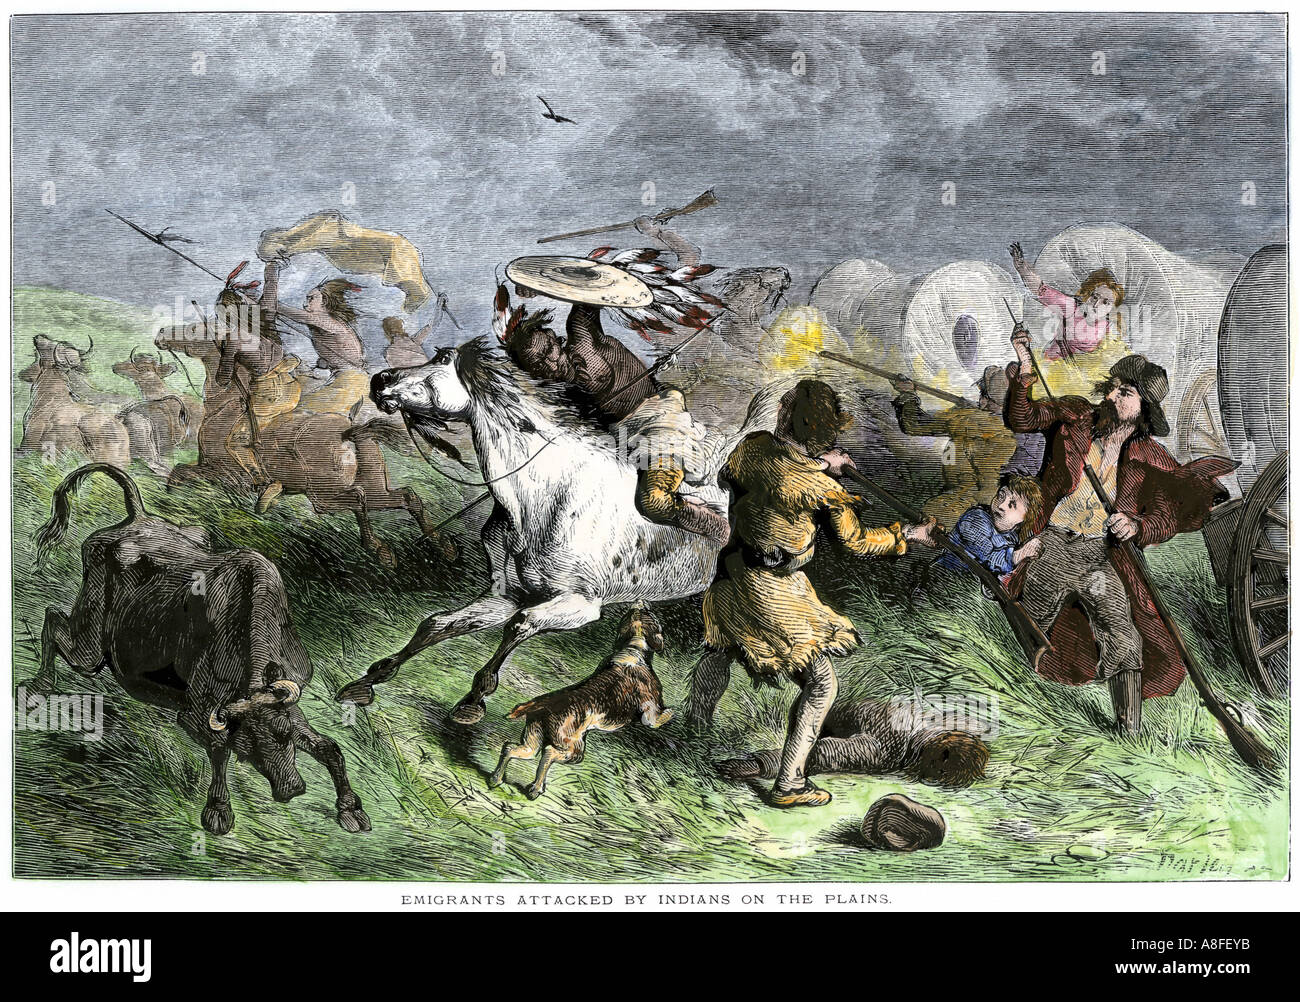 Native American war party attacking a wagon train of settlers on the Great Plains 1800s. Hand-colored woodcut Stock Photo